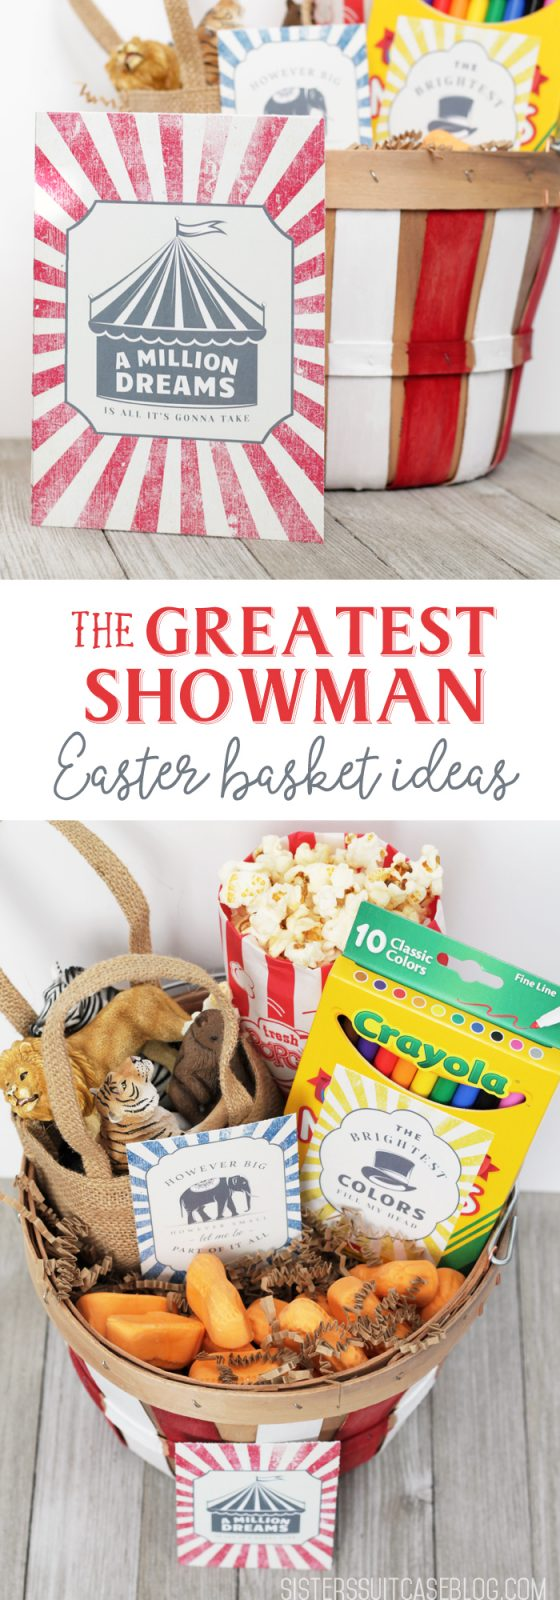 Greatest showman easter basket my sisters suitcase greatest showman easter basket ideas negle Images